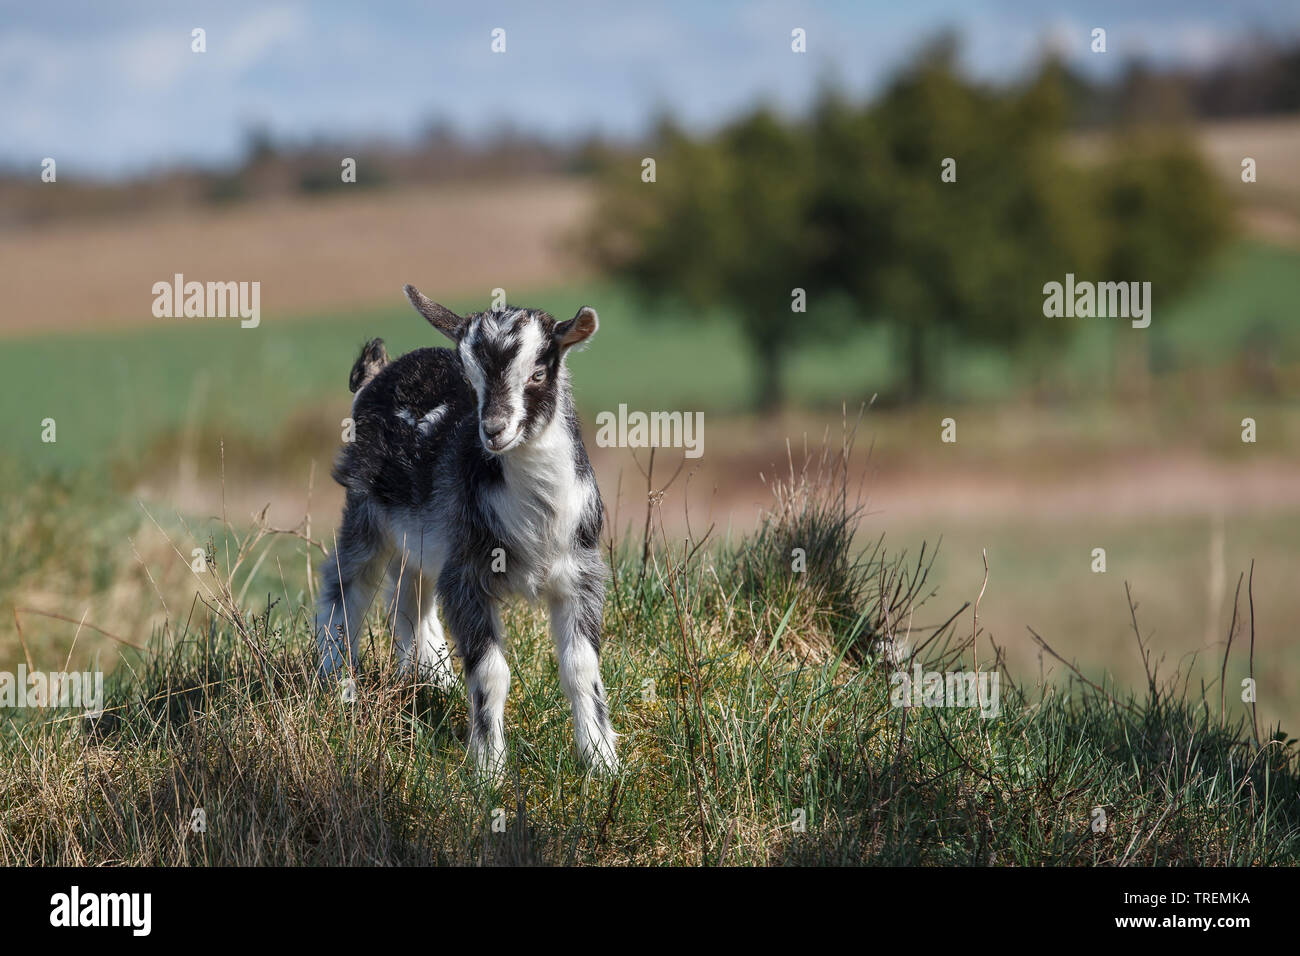 Young white and black goatling on the hill in the landscape background - Stock Image